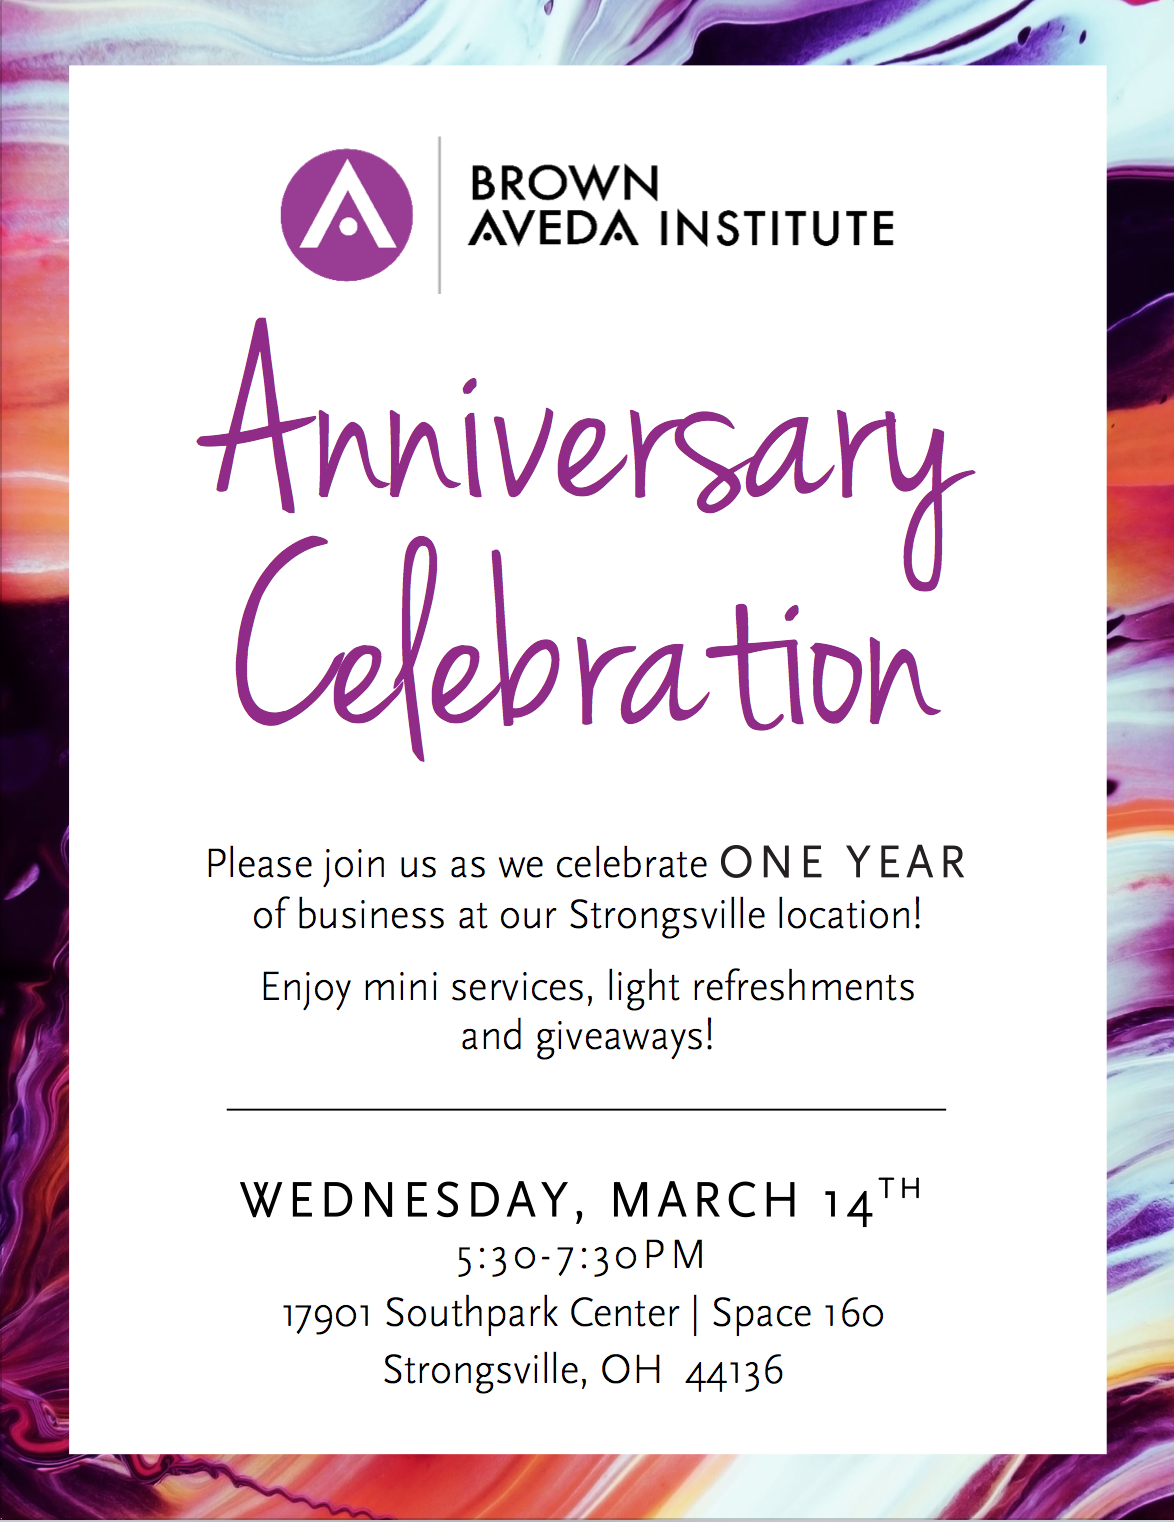 brown-aveda-strongsville-1-year-anniversary.png